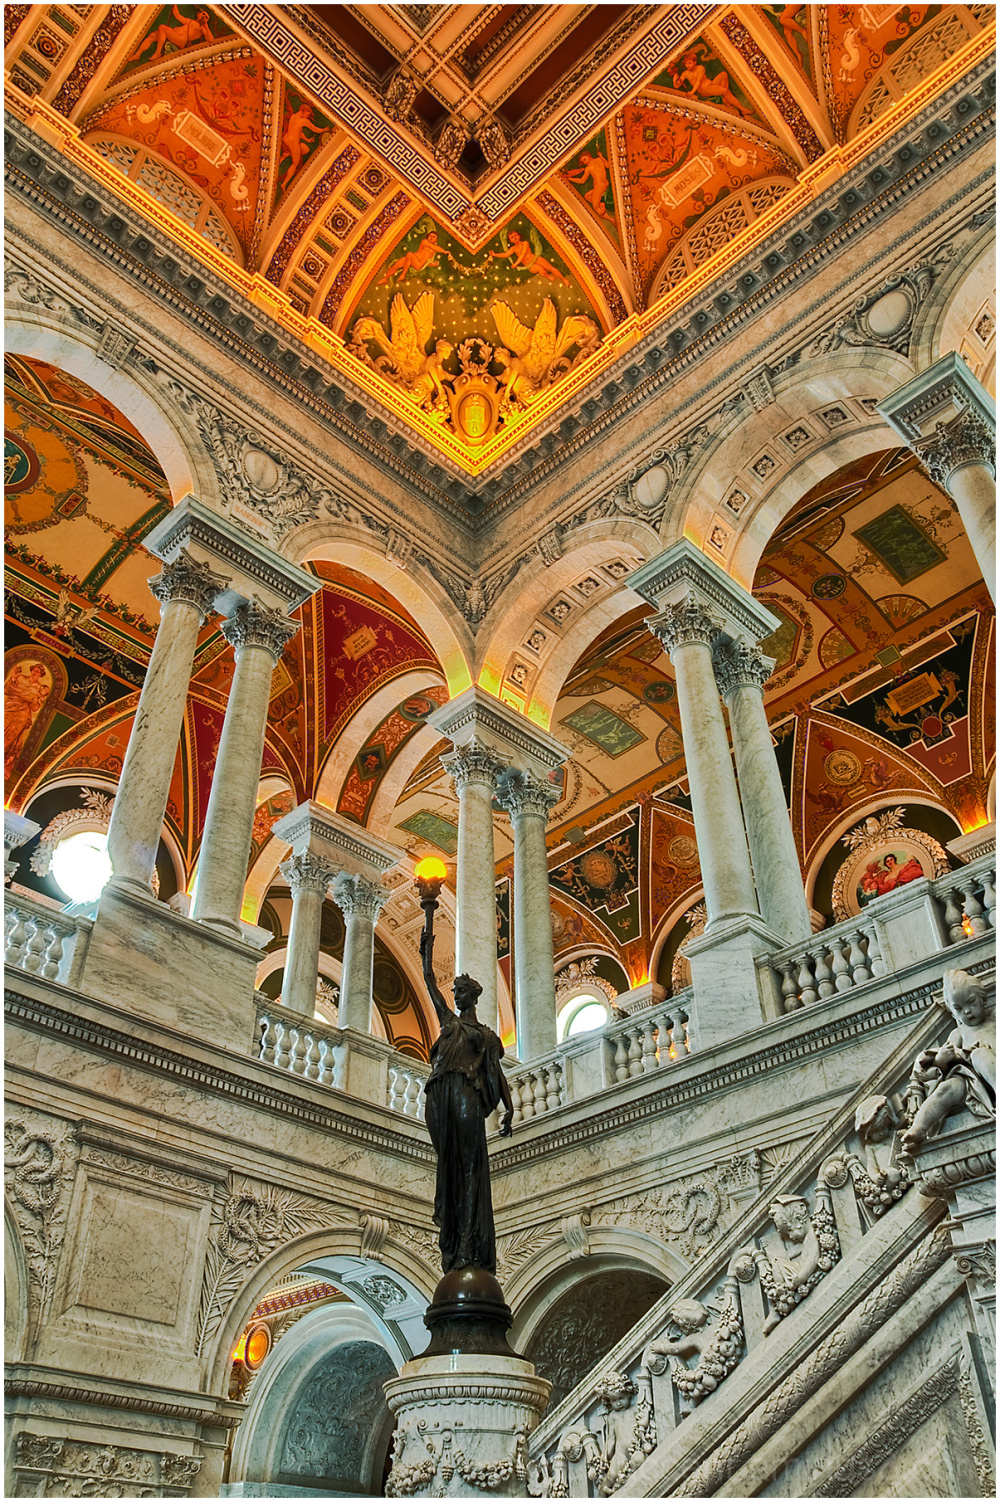 The Library of Congress, Washington DC, USA